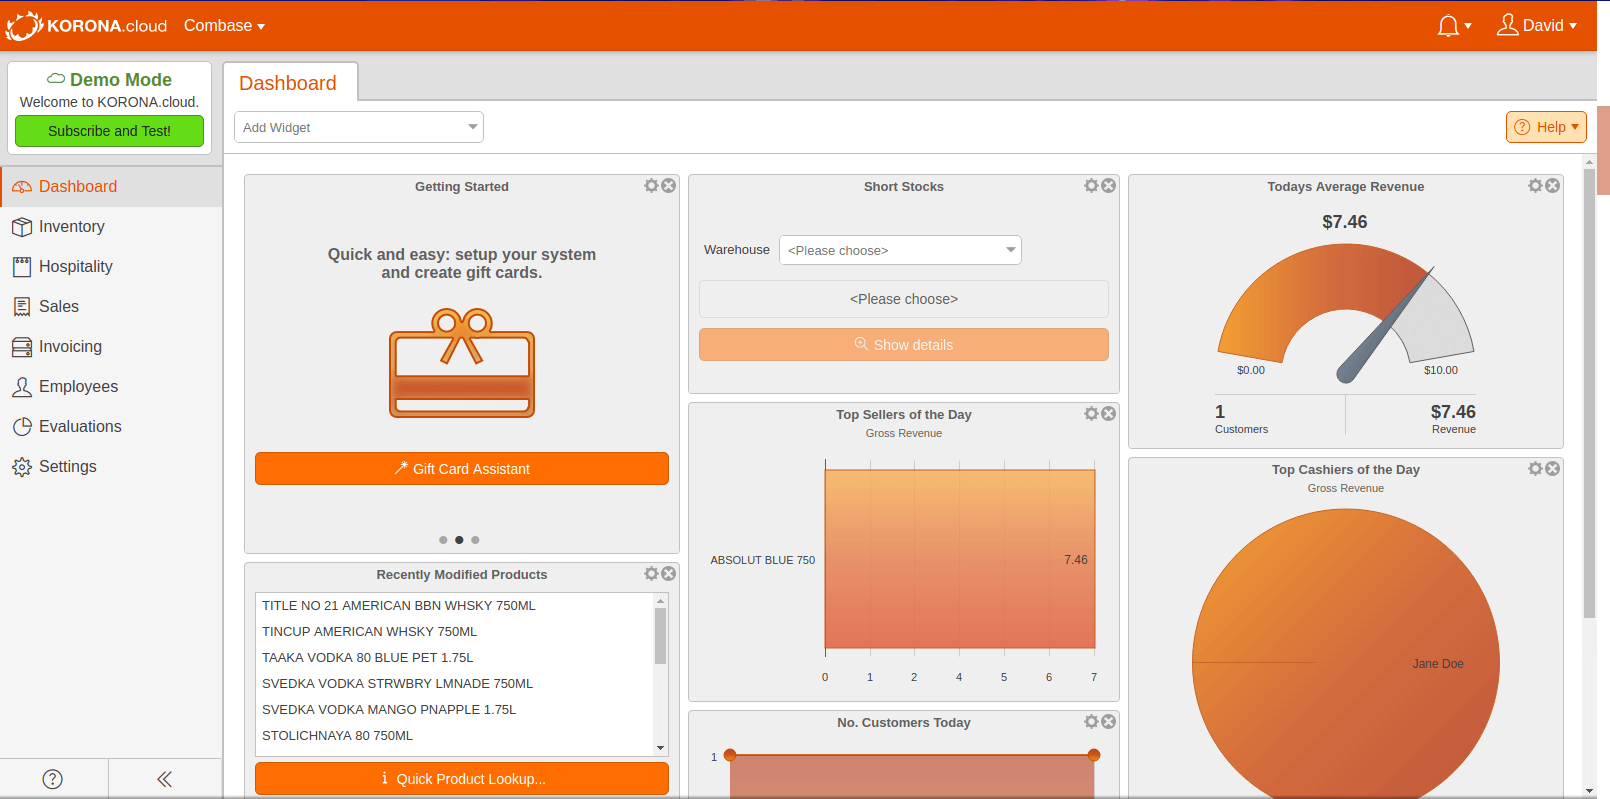 KORONA POS software dashboard page with metrics